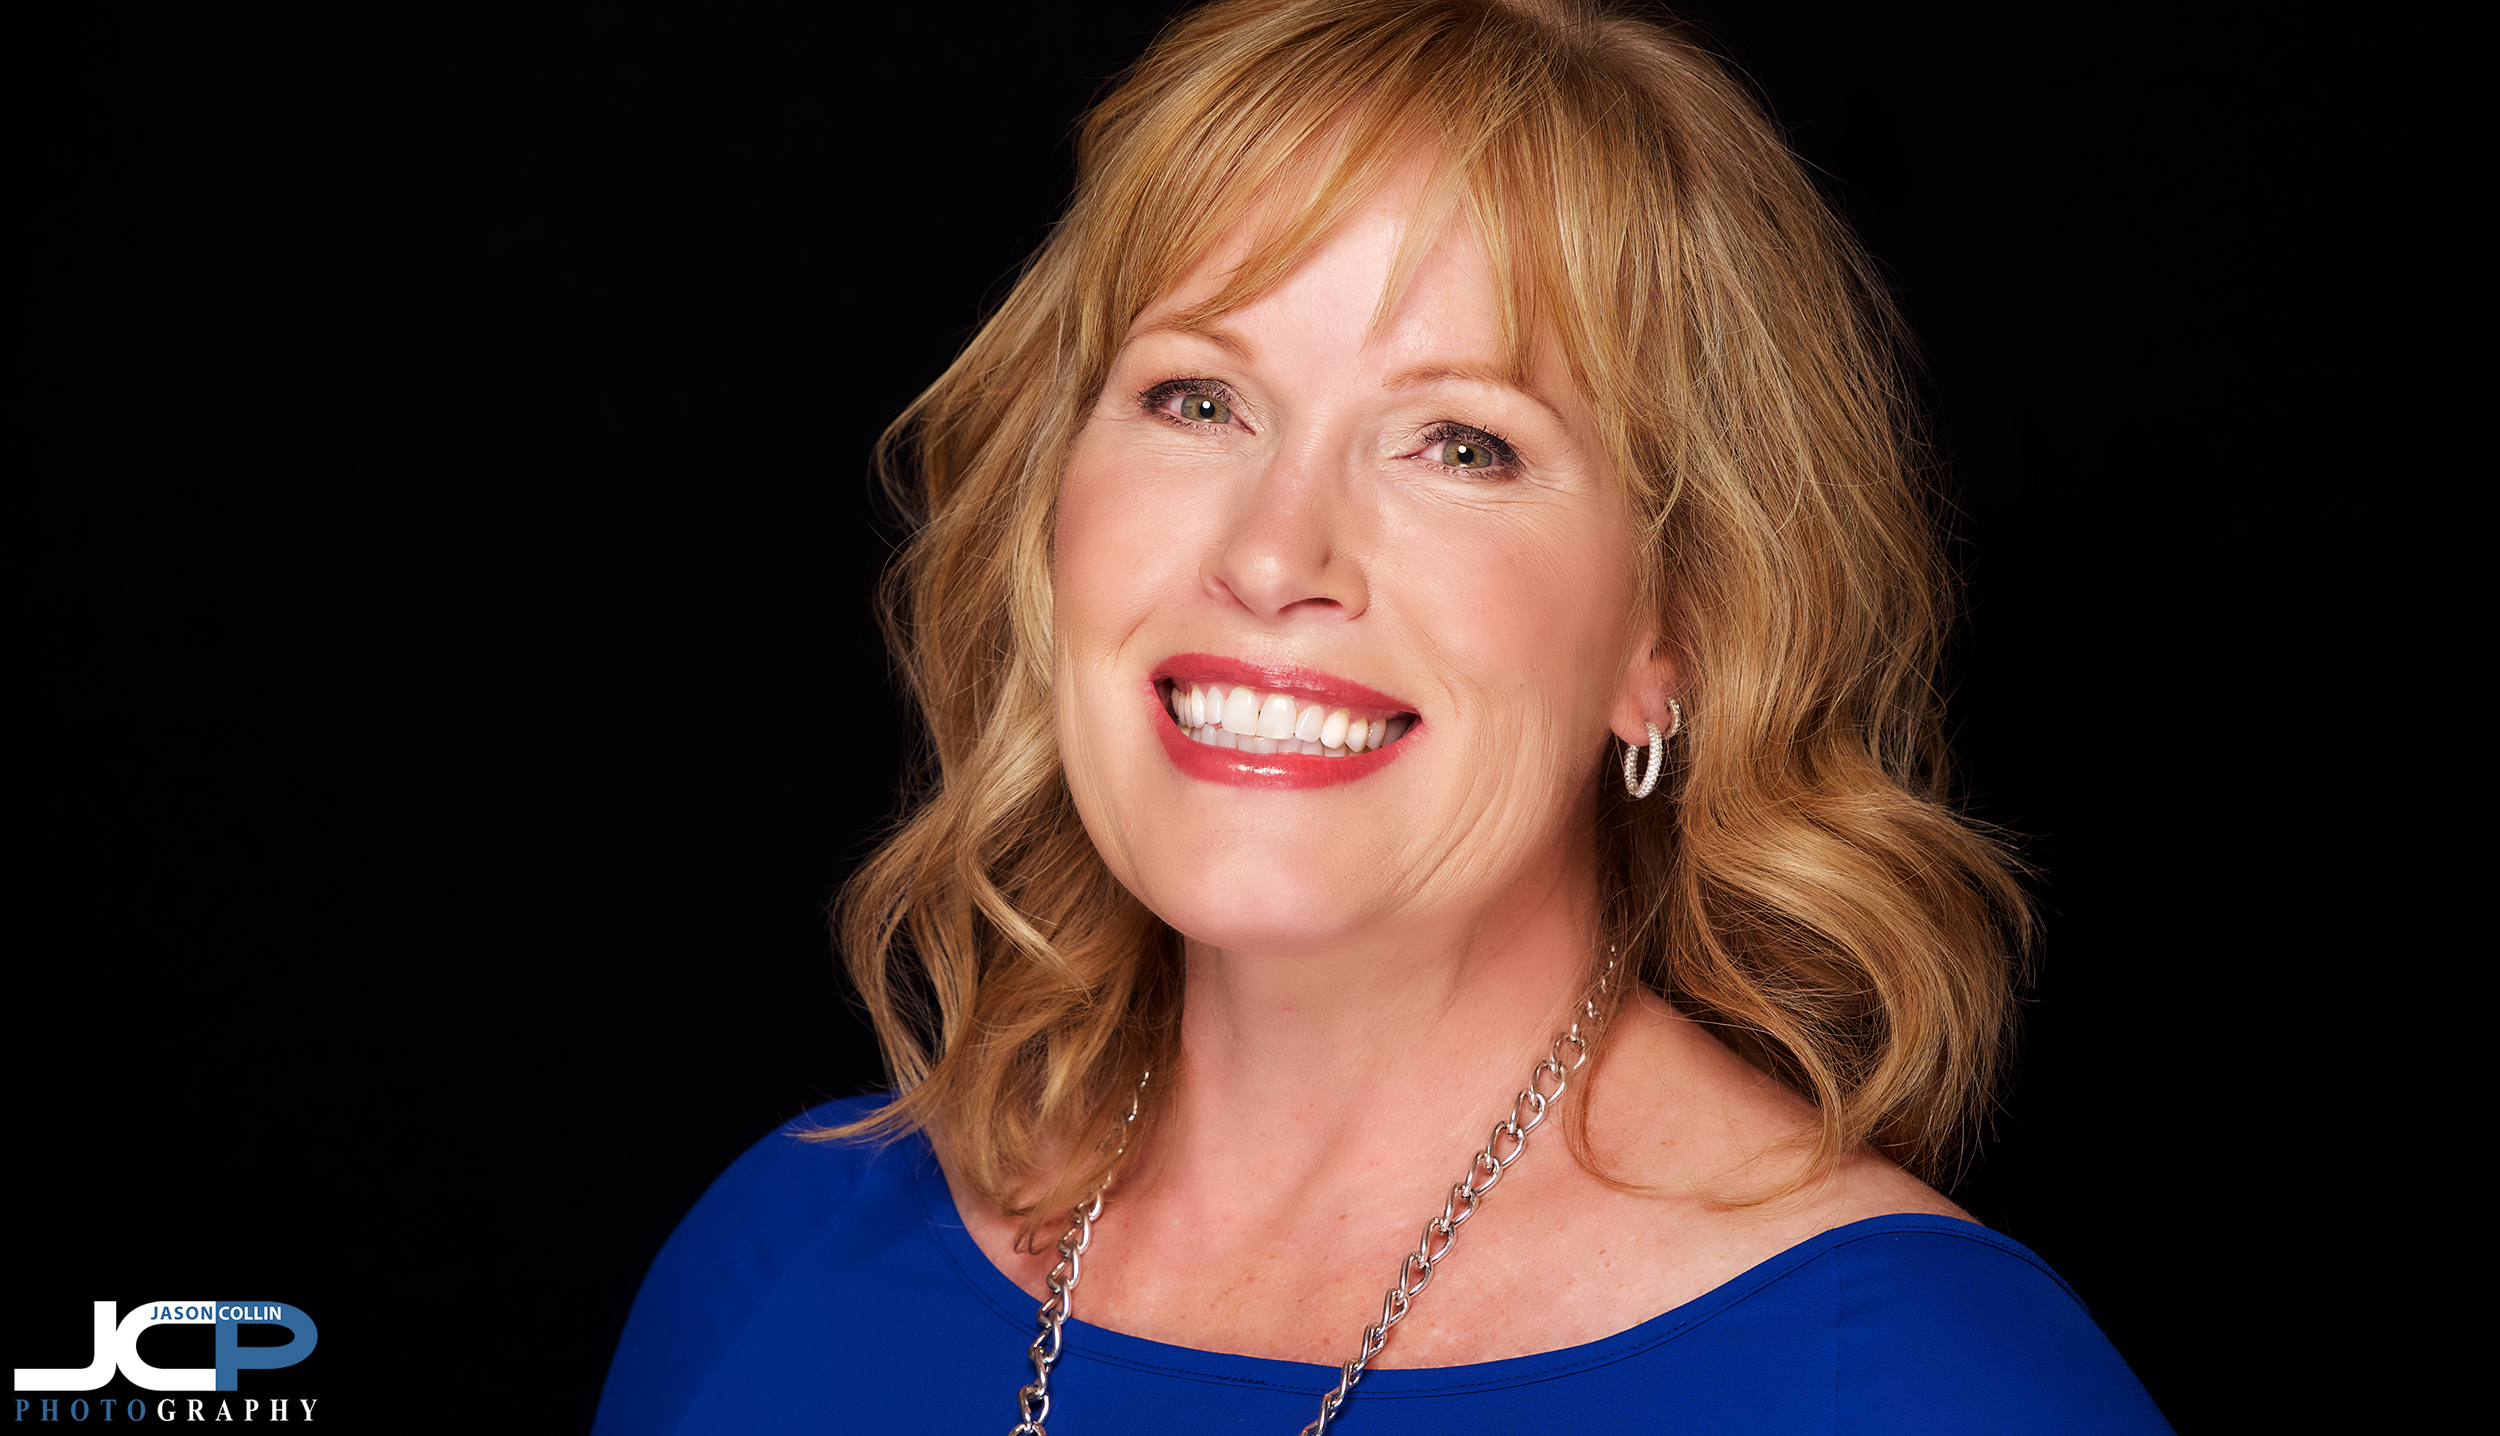 Getting big smiles out of my headshot clients is my specialty at my JCP Home Studio in Albuquerque, New Mexico